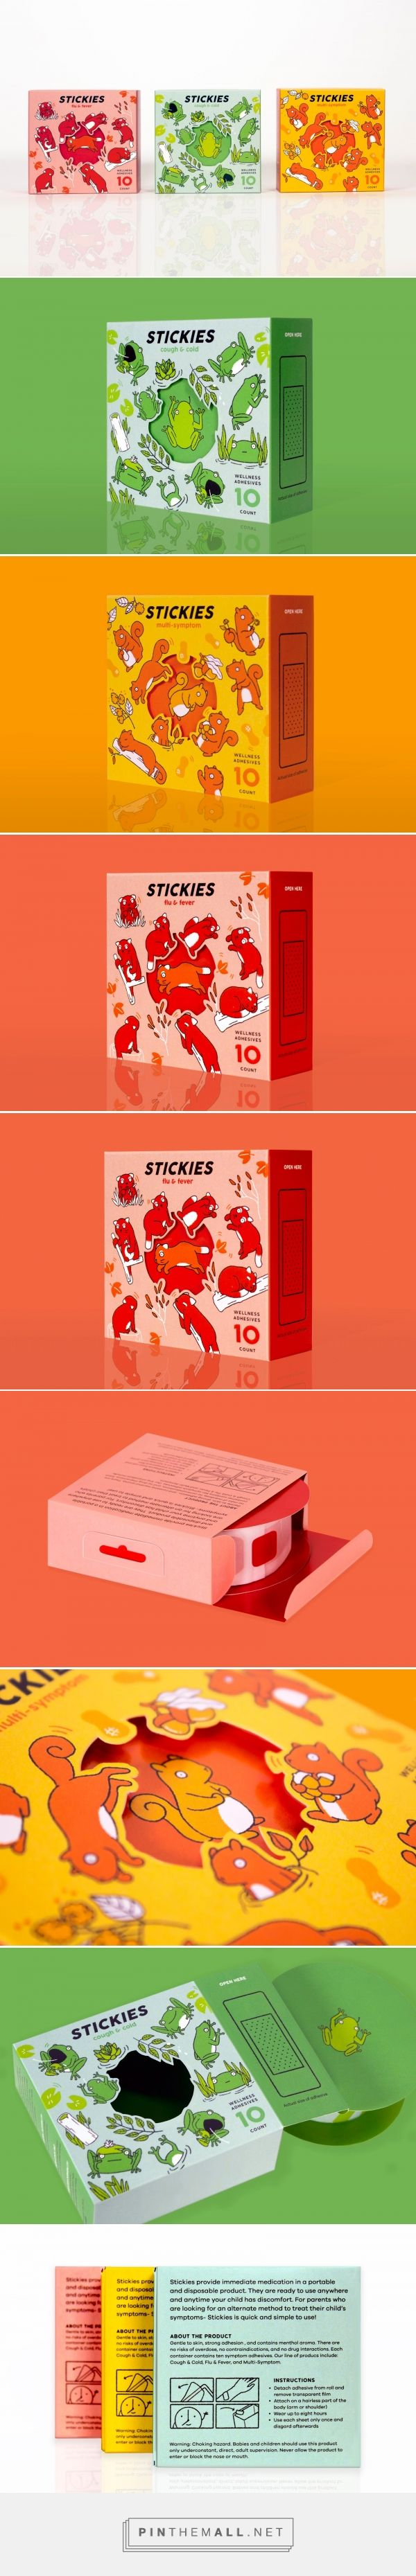 Stickies (Concept) - Packaging of the World - Creative Package Design Gallery - http://www.packagingoftheworld.com/2017/05/stickies-concept.html